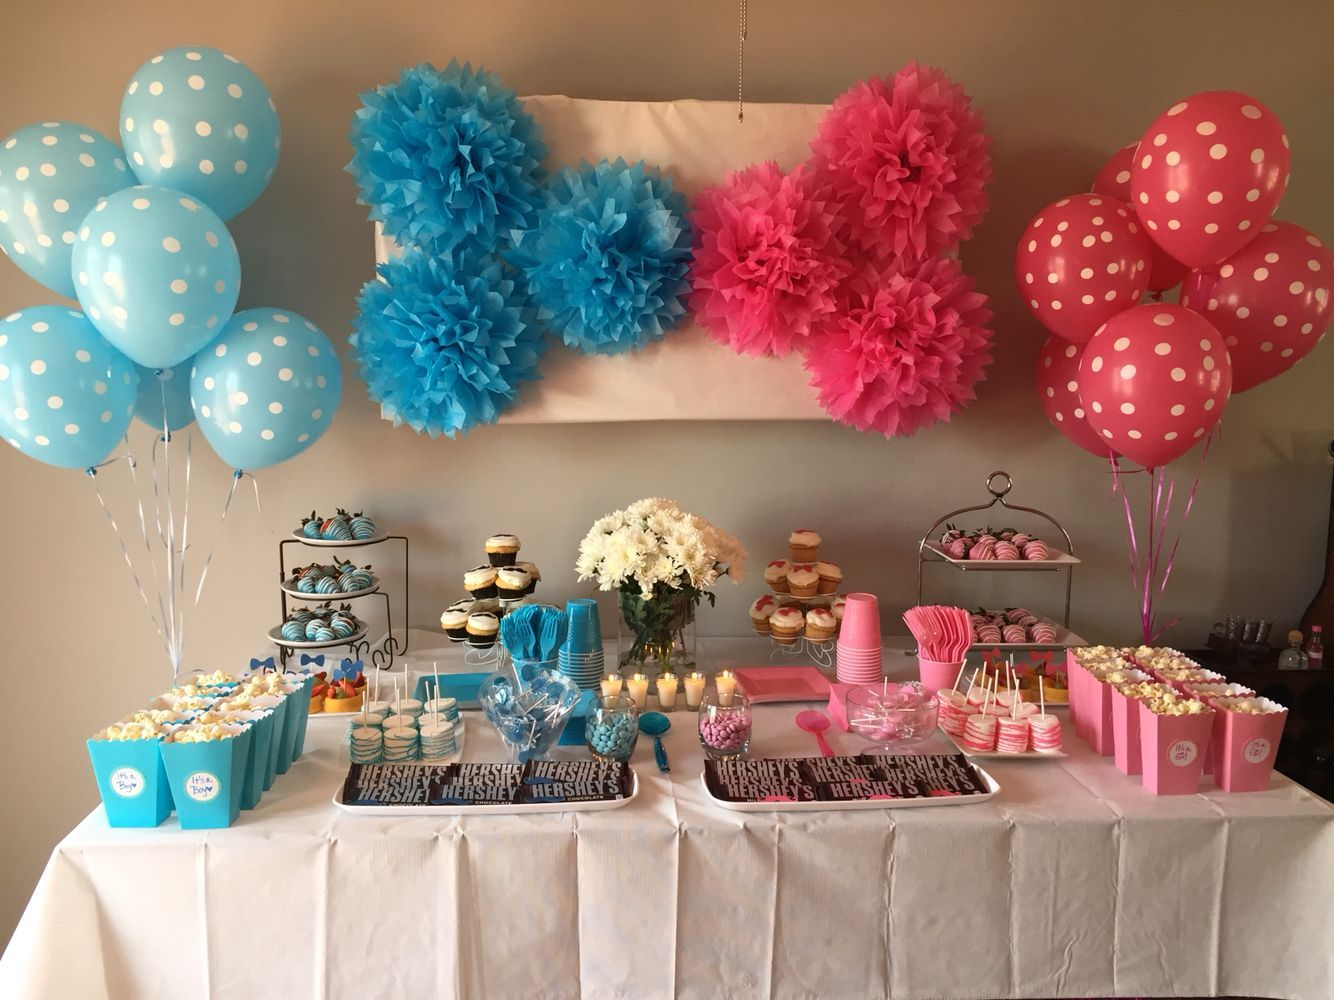 10 Gender Reveal Party Food Ideas That Are Mouth Watering Gender Reveal Party Fo Gender Reveal Party Food Gender Reveal Party Decorations Baby Reveal Party